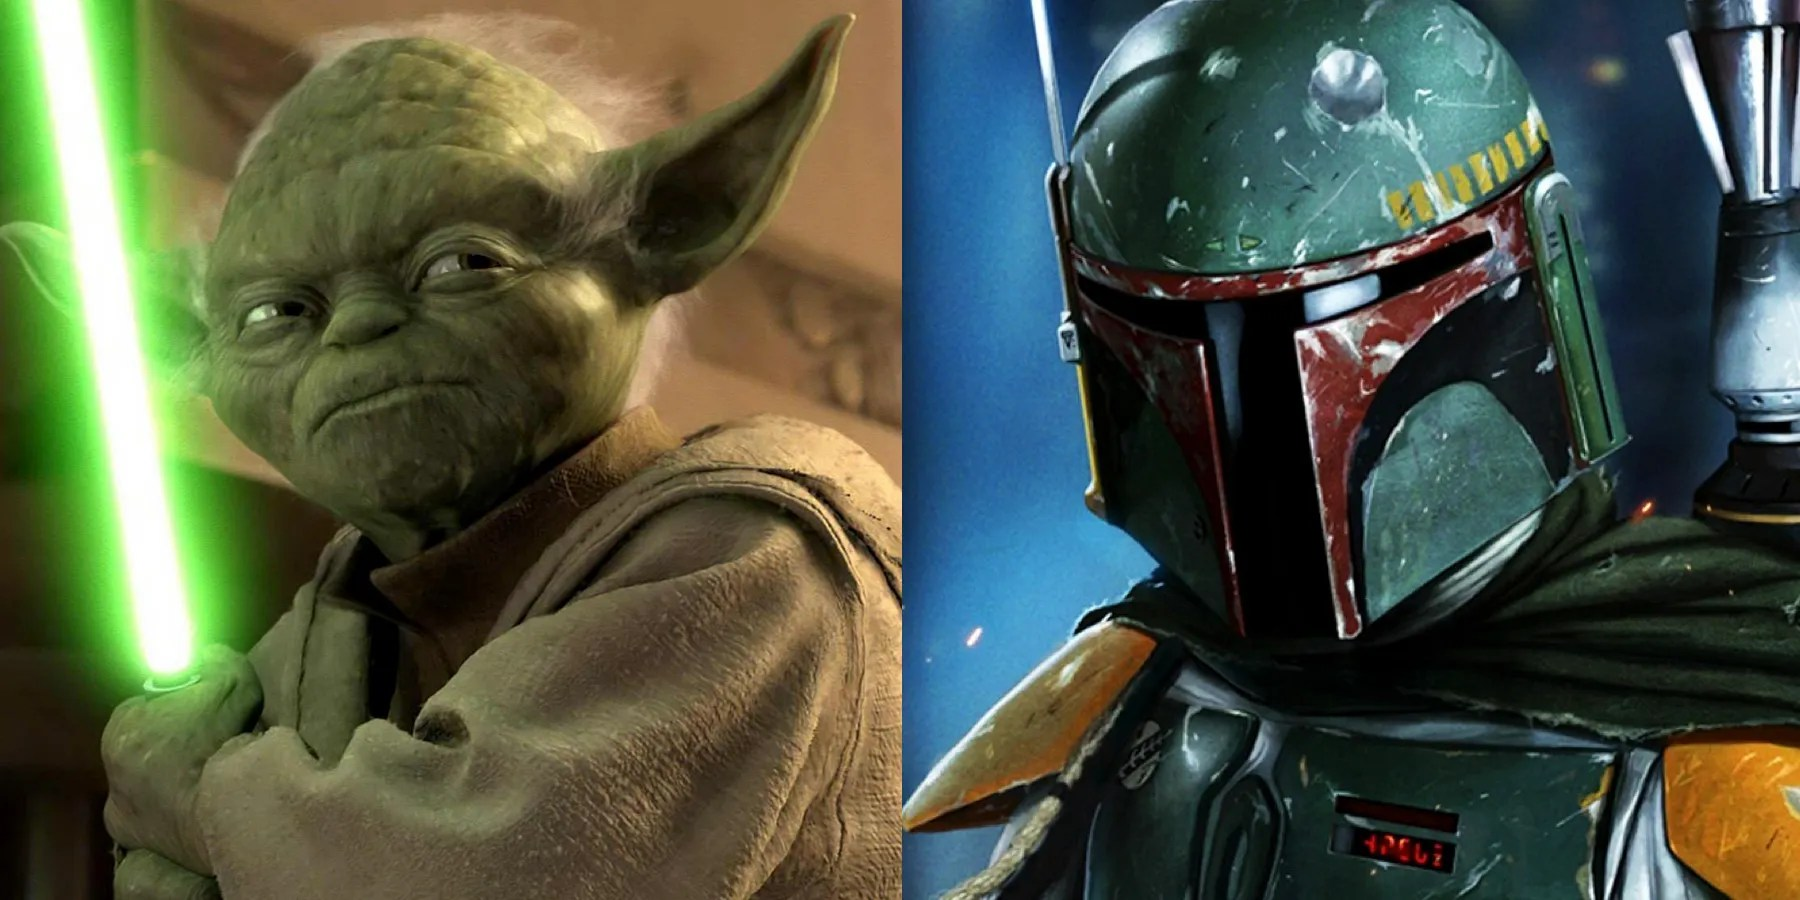 Yoda Amp Boba Fett Movies Are Being Considered Screen Rant